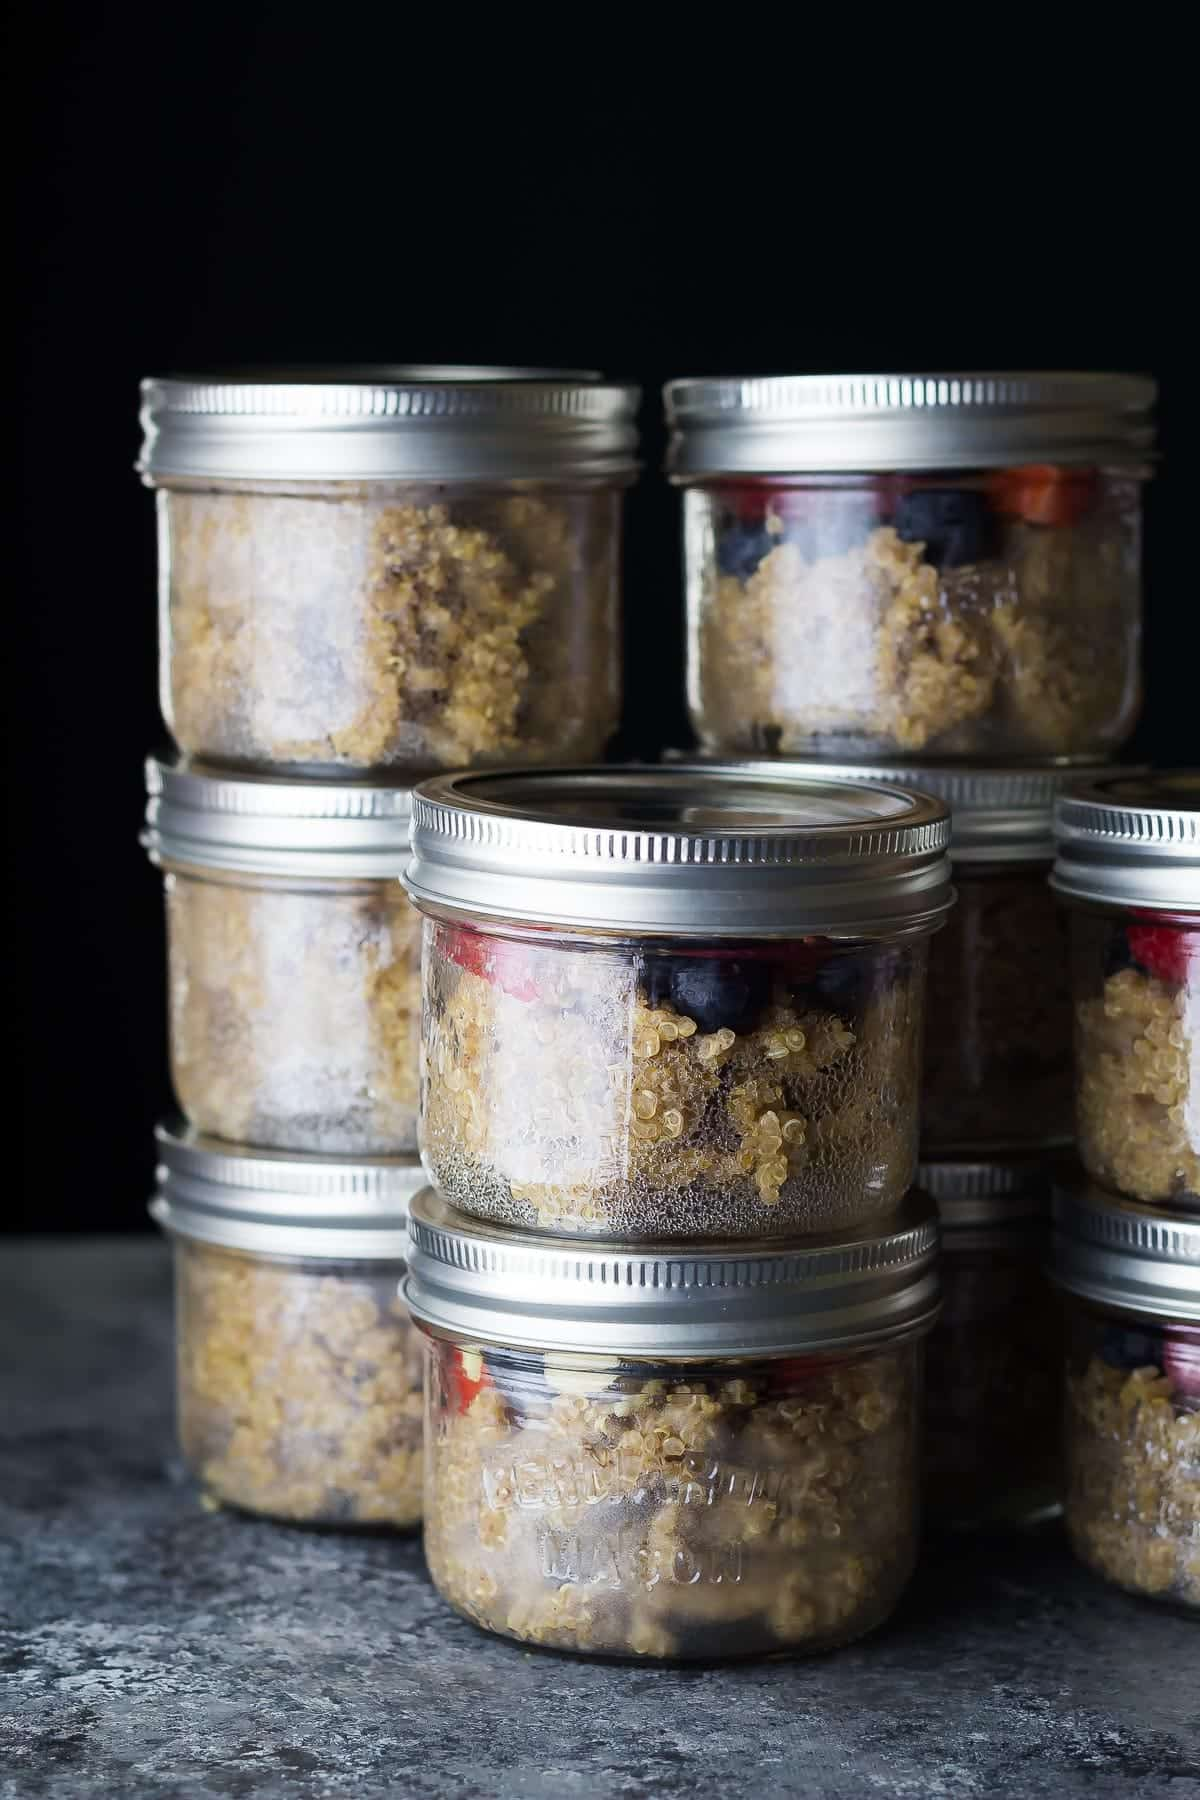 Berry Breakfast Quinoa Meal Prep in jars, stacked